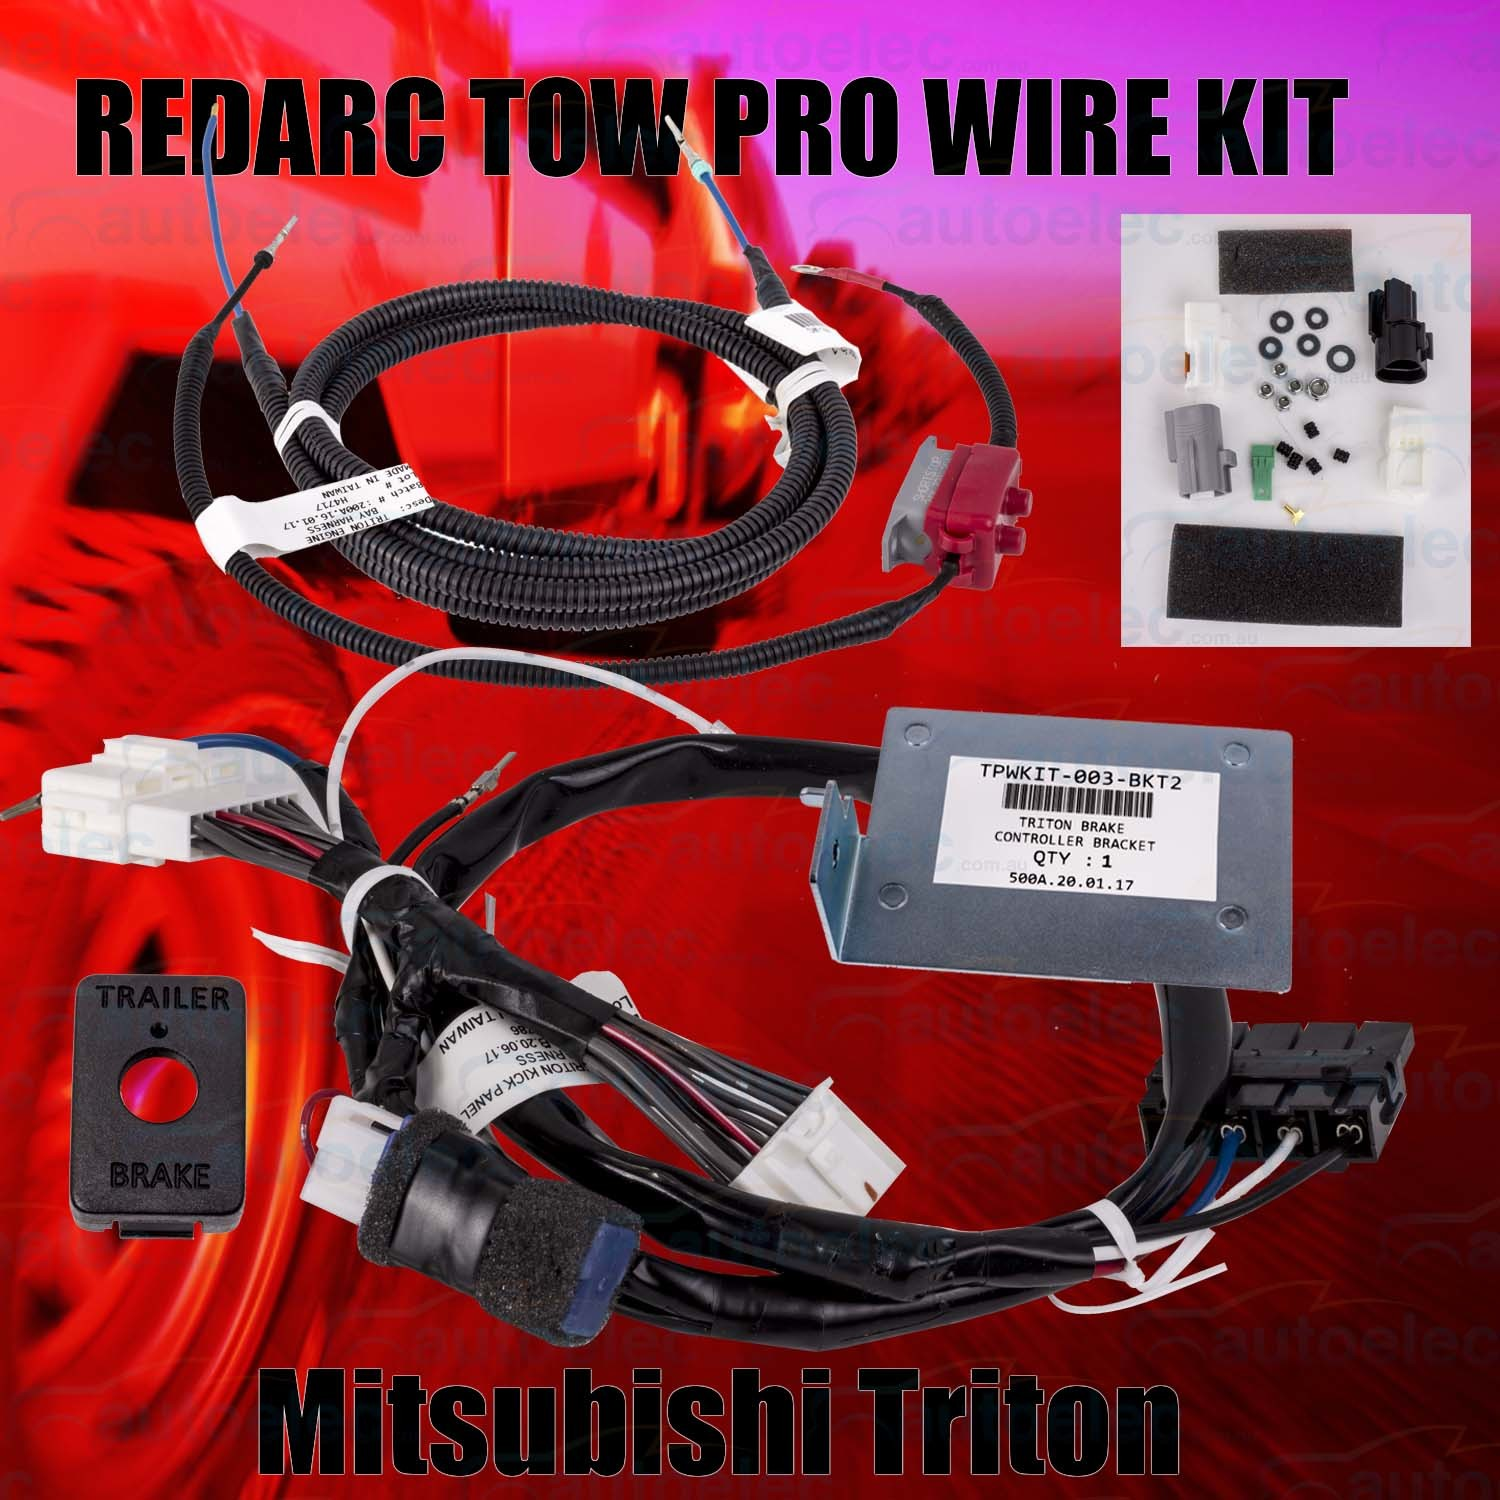 hight resolution of redarc towpro elite classic wiring harness loom kit mitsubishi triton 2017 on